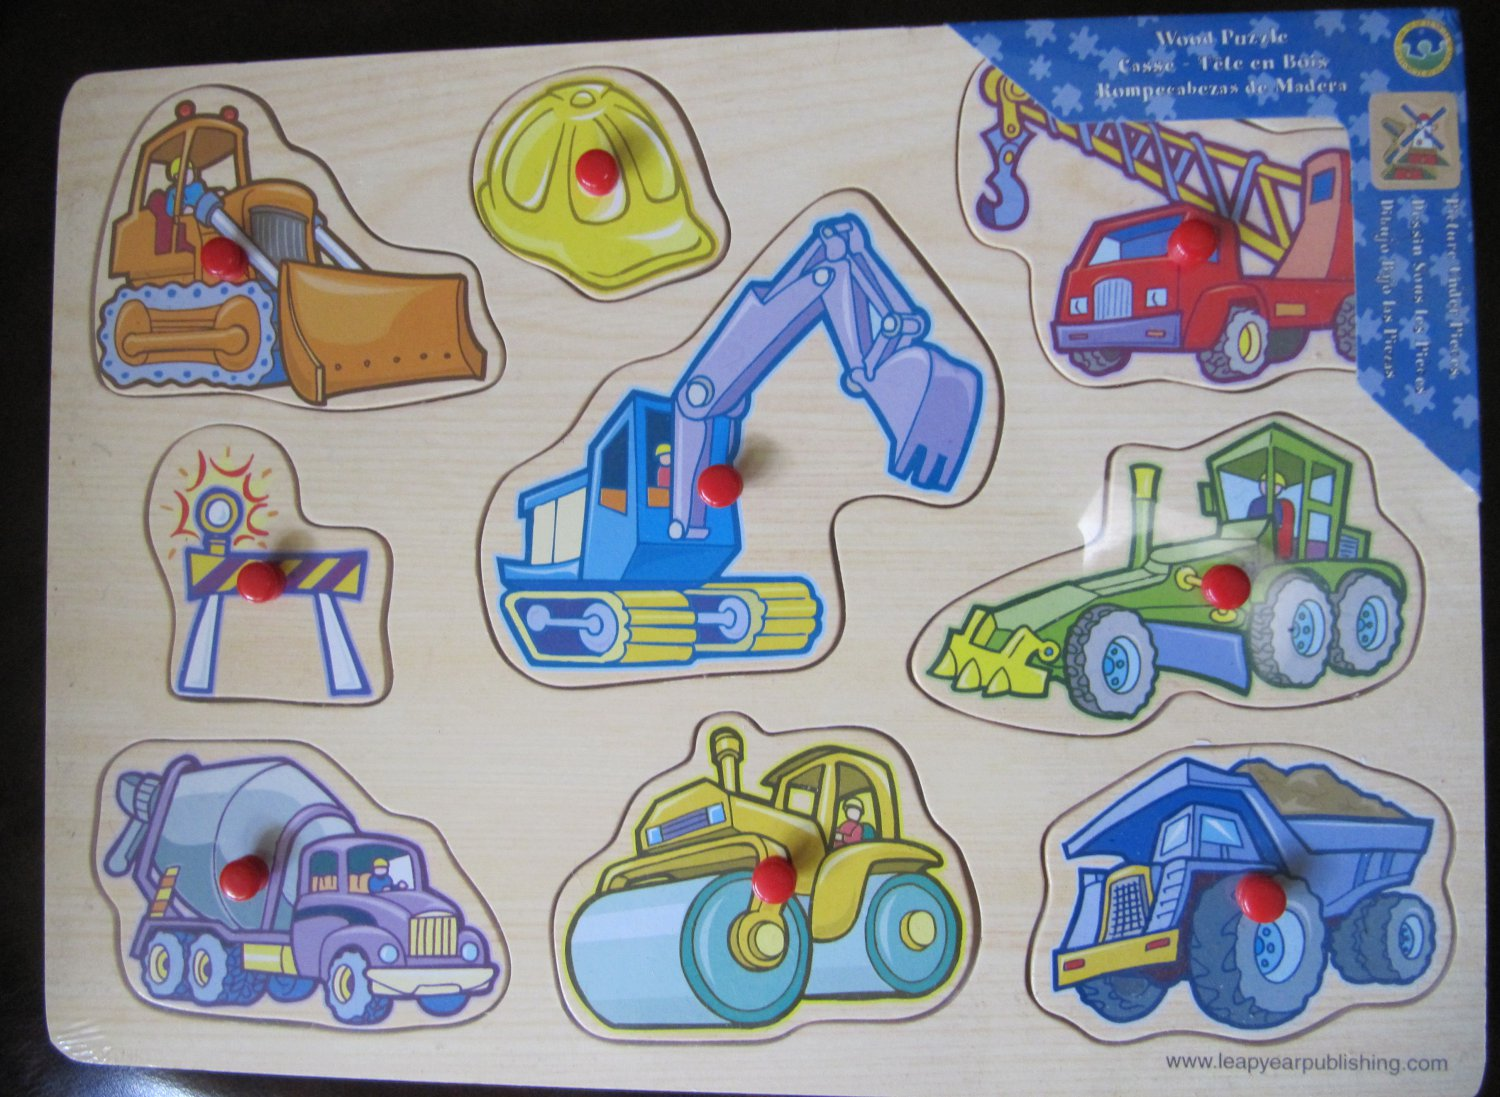 Leap Year Wood Puzzle Construction Equipment 9 Pieces with Knobs 12 x 8.5 In